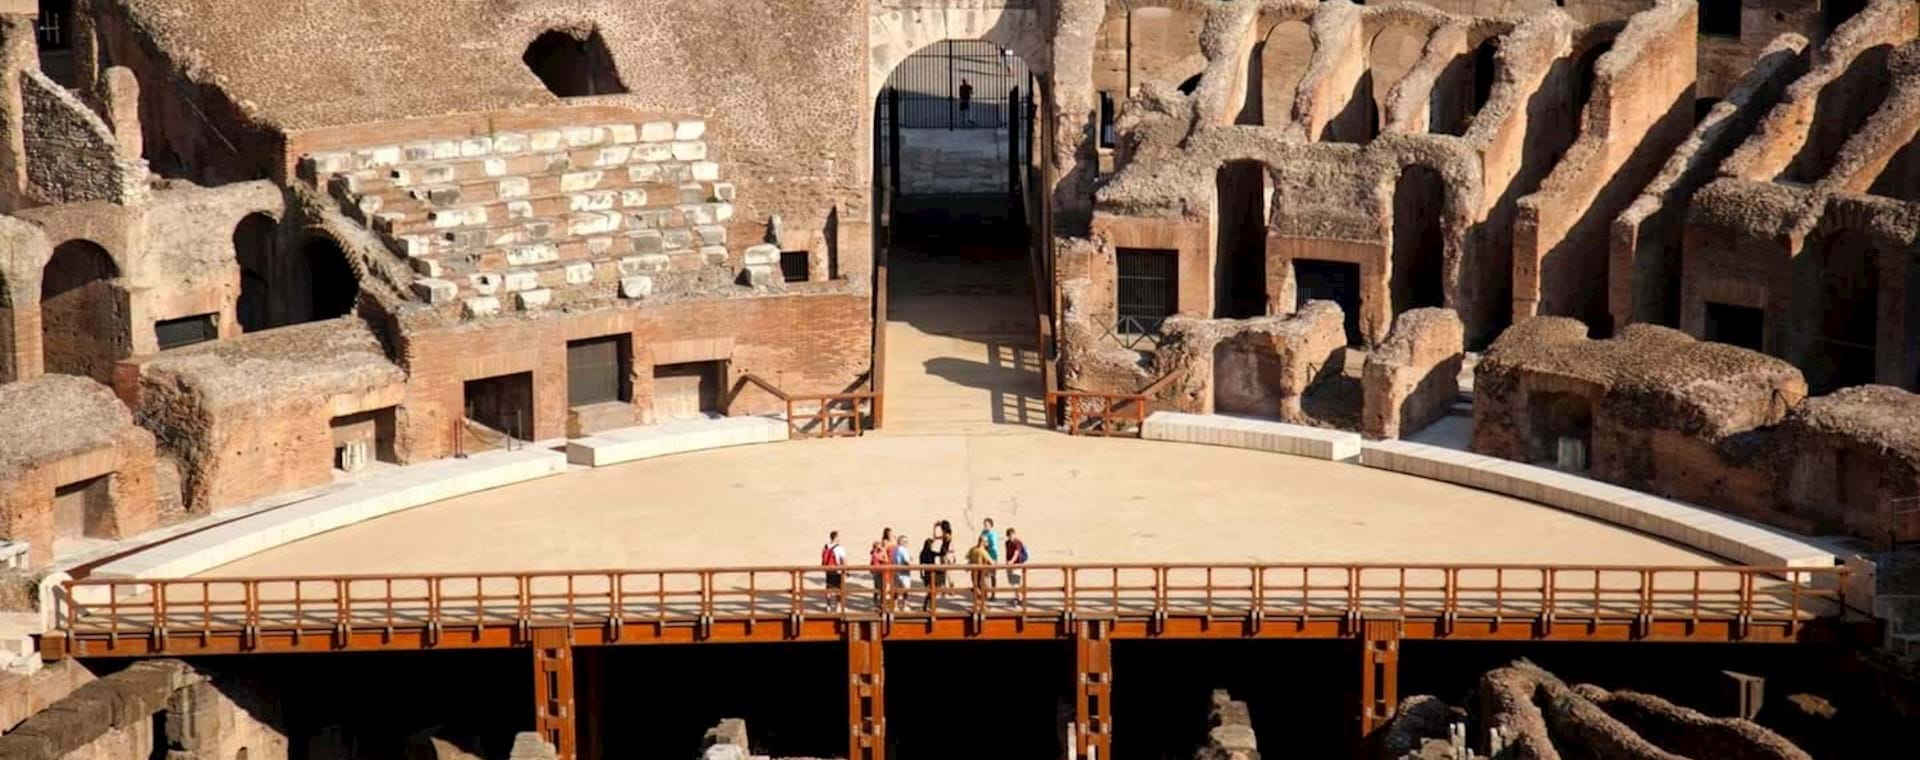 Express Colosseum Tour with Gladiator's Entrance and Special Arena Floor Access